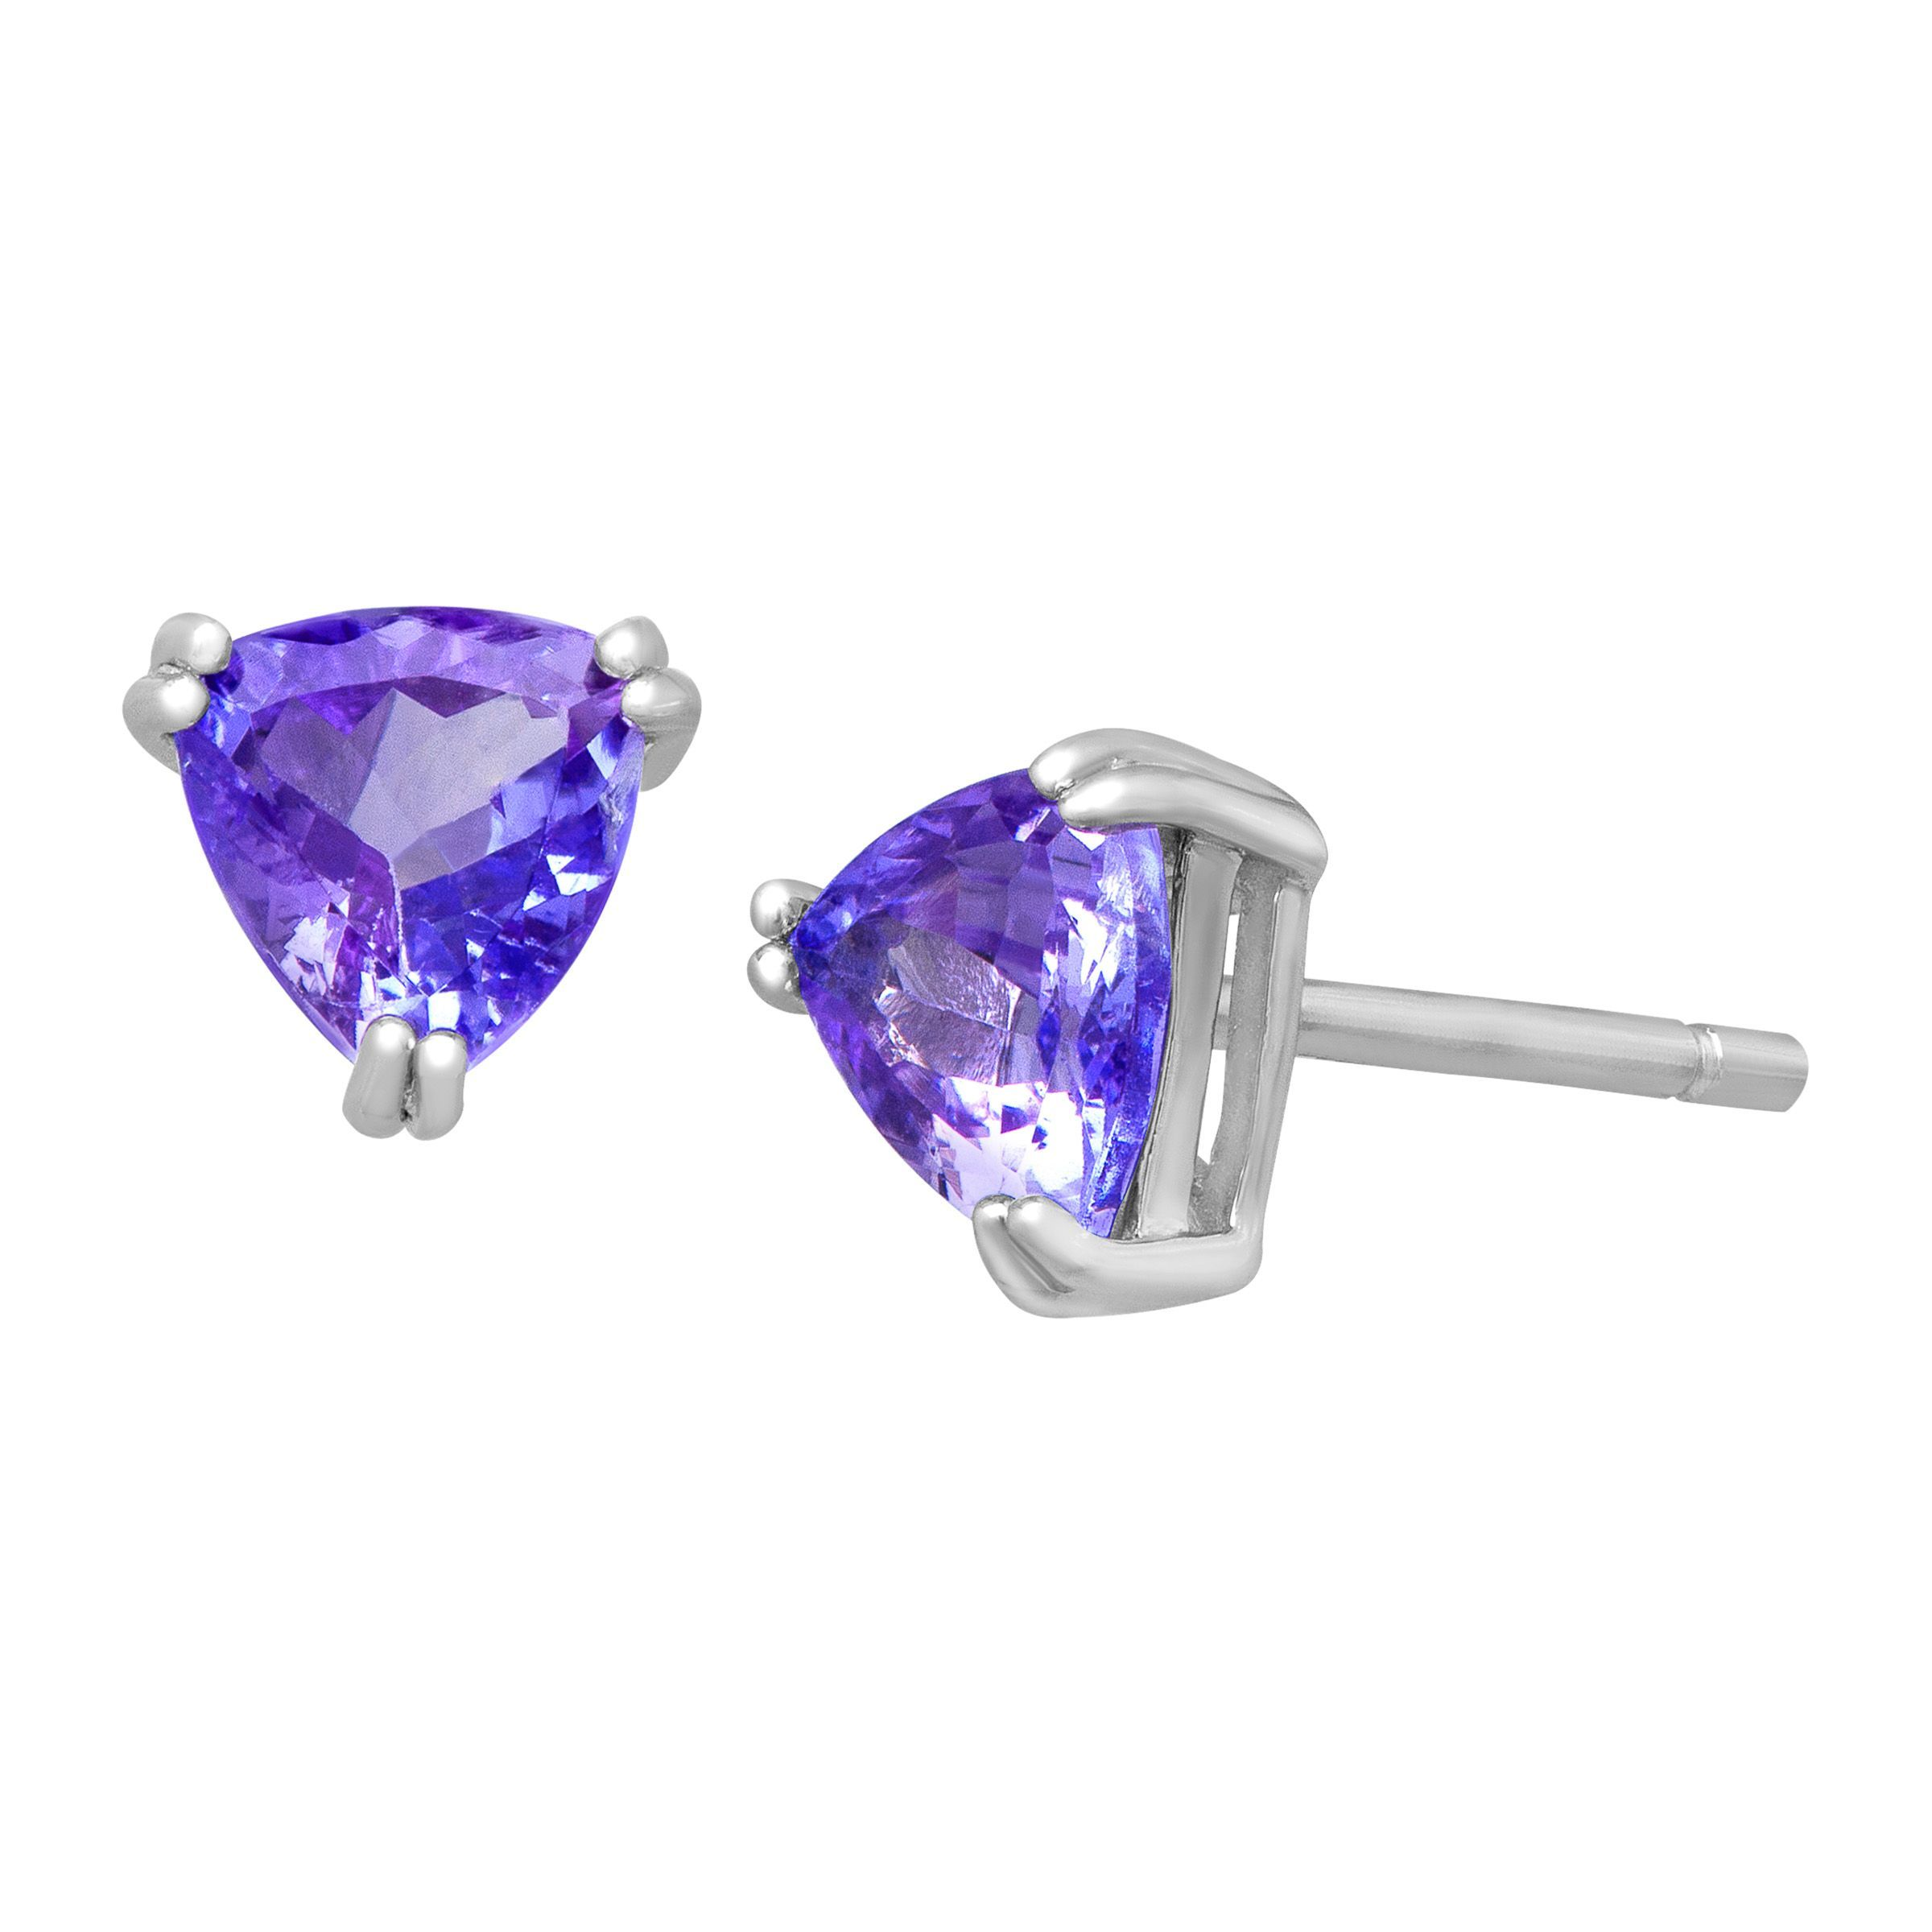 j blue tanzanite ring jewelry cocktail w vivid platinum rings for carat id natural sale l